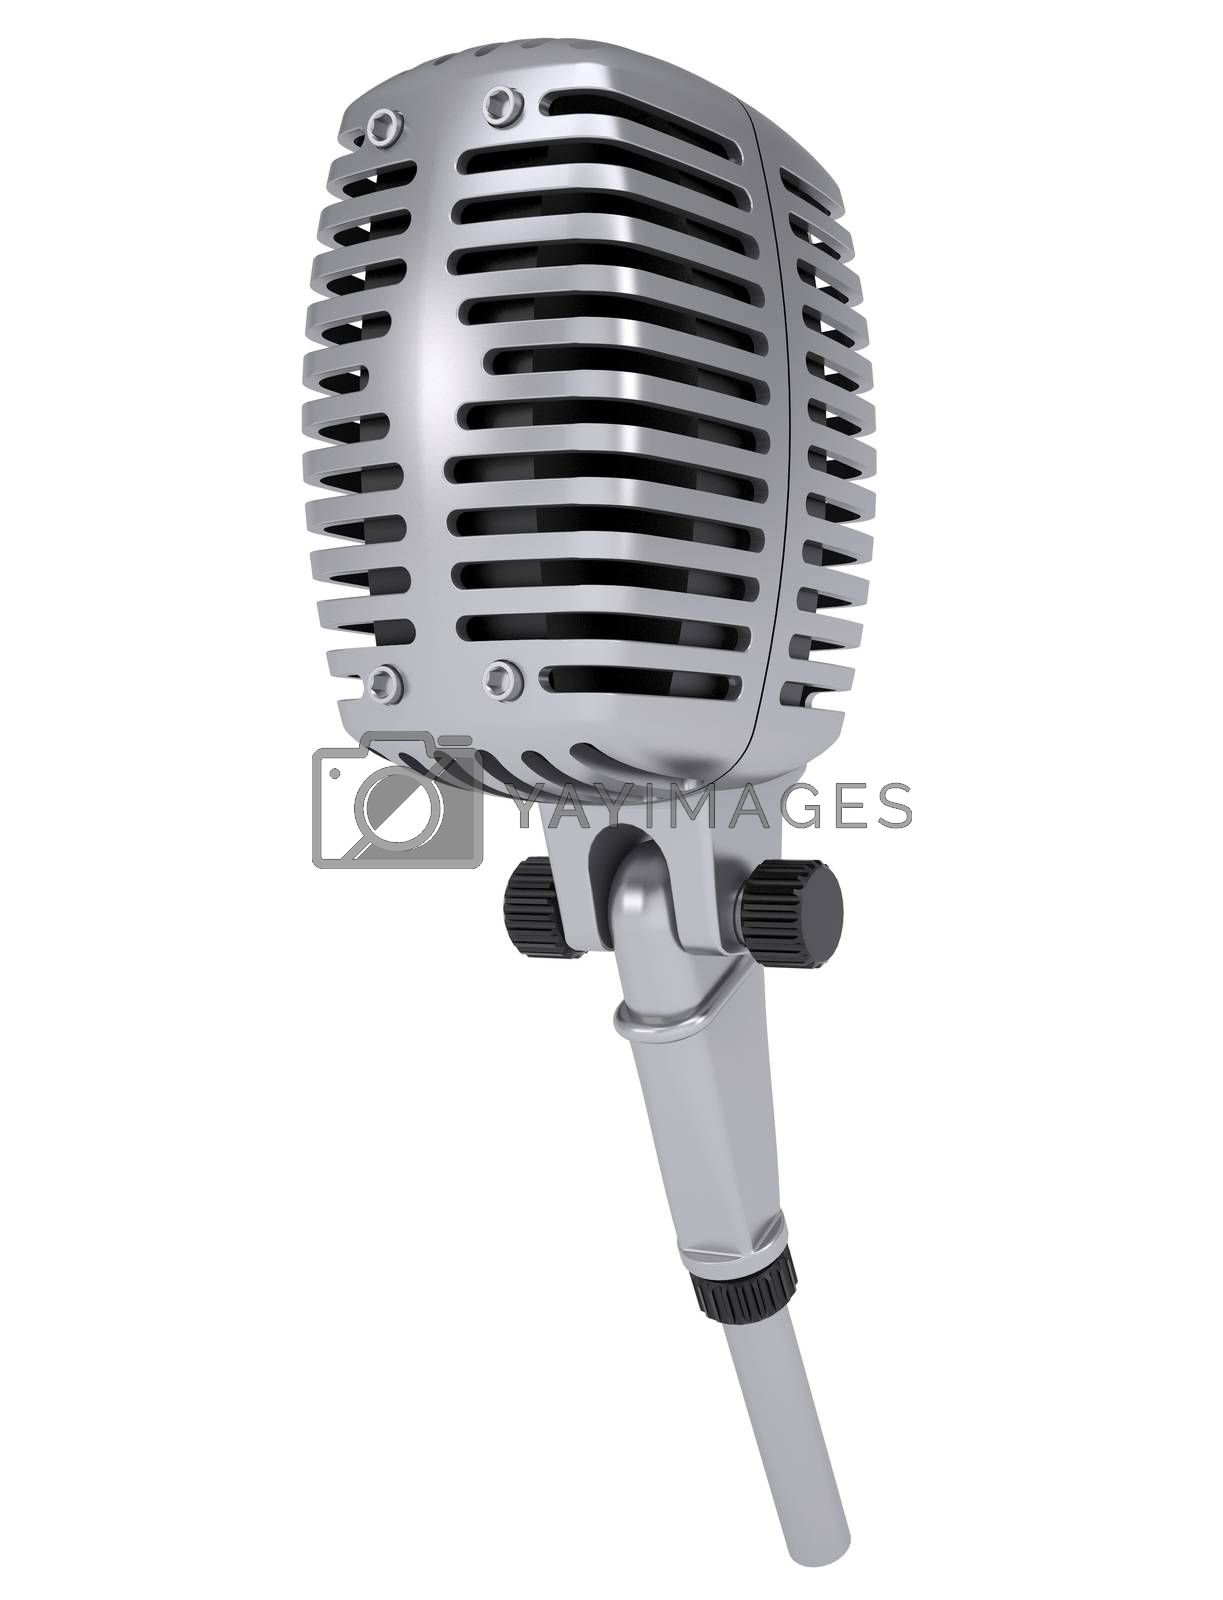 Royalty free image of Studio microphone by cherezoff